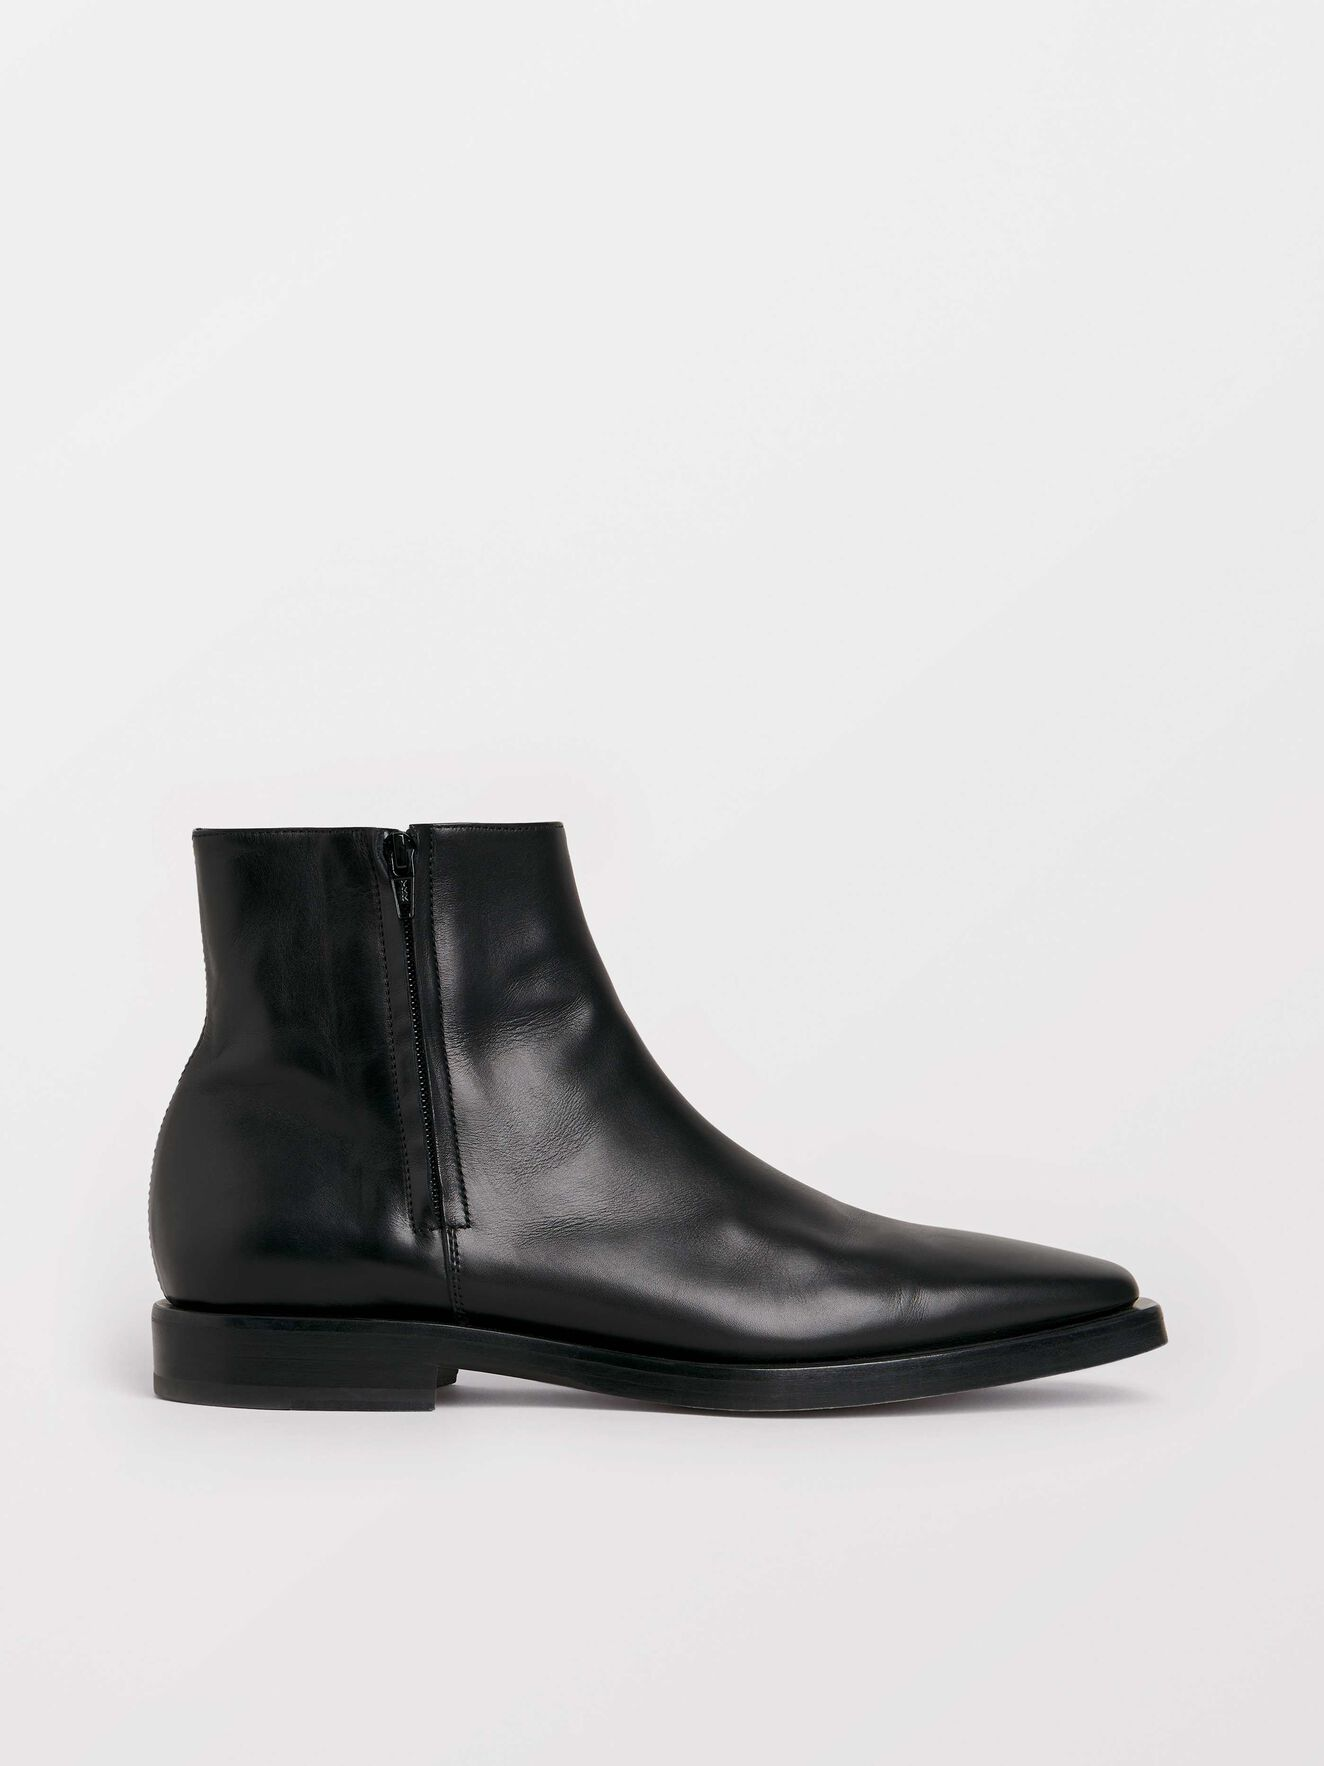 Bartis Boots in Black from Tiger of Sweden